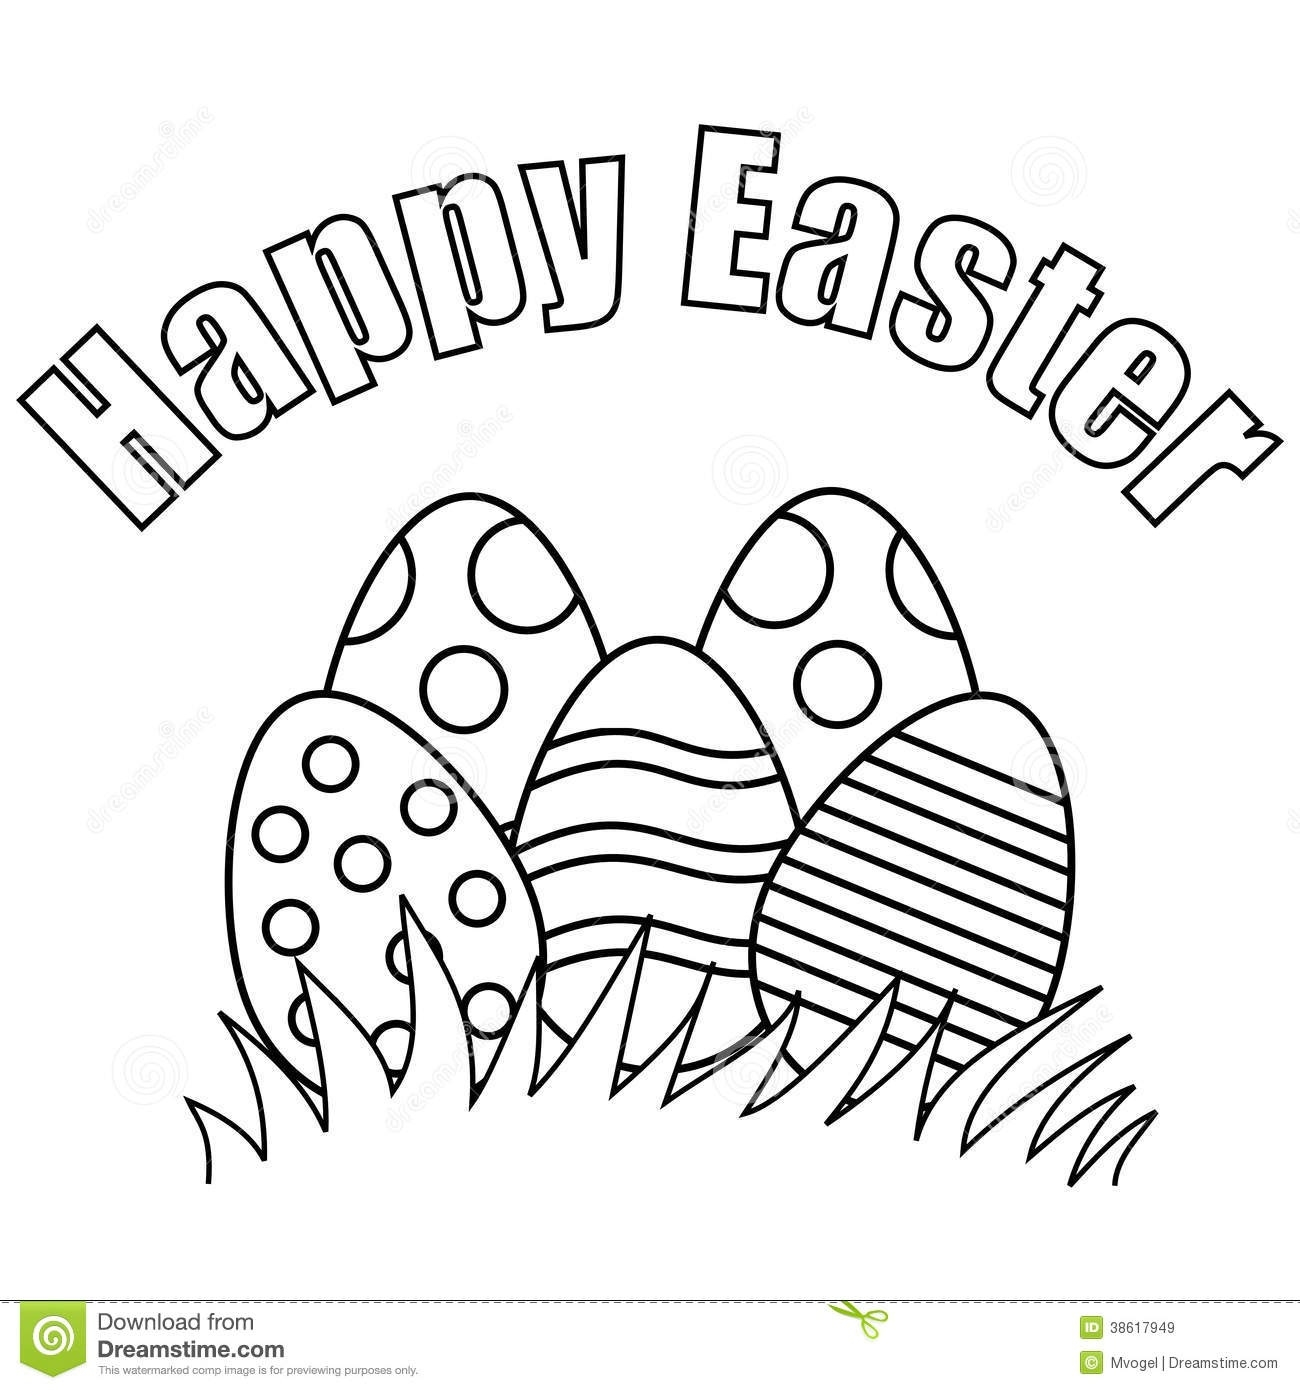 Happy Easter Clip Art Black And White